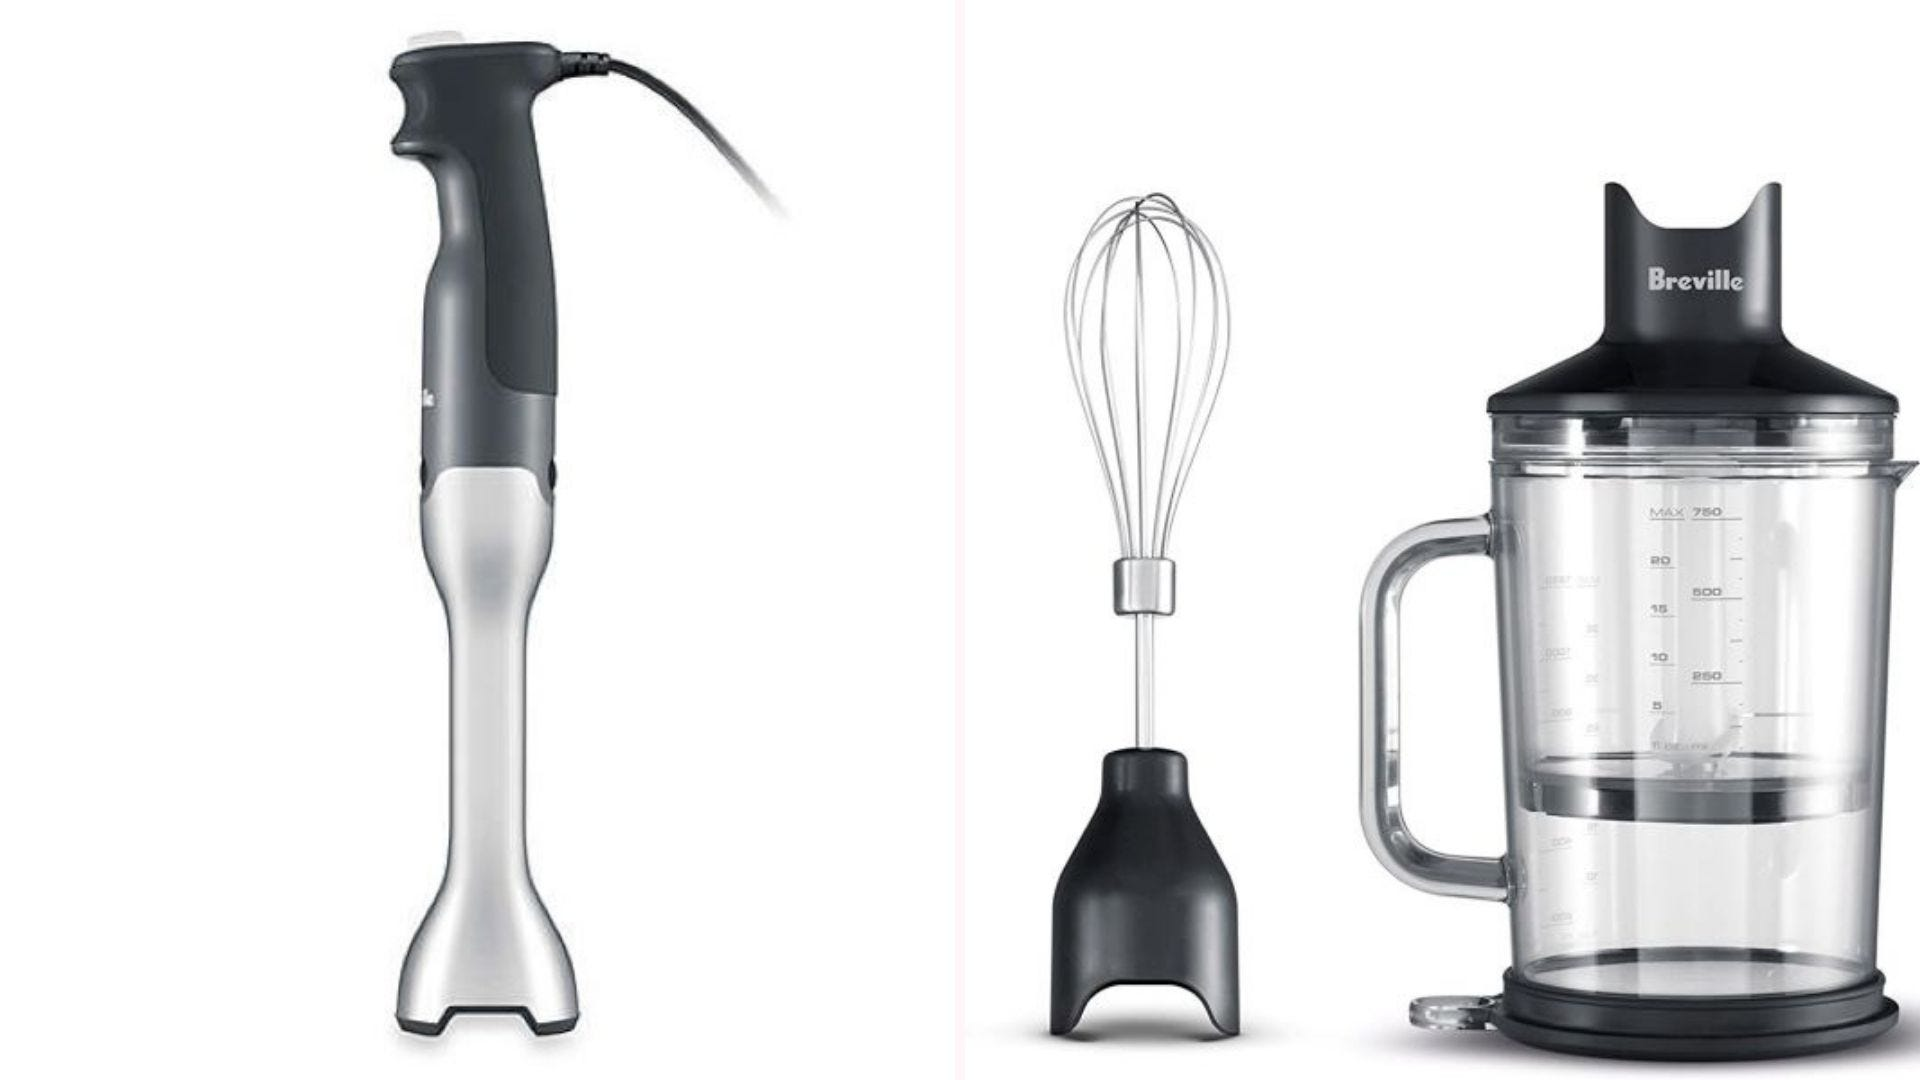 The Breville BSB510XL Control Grip Immersion Blender, mixer attachment, and three-cup chopper bowl.